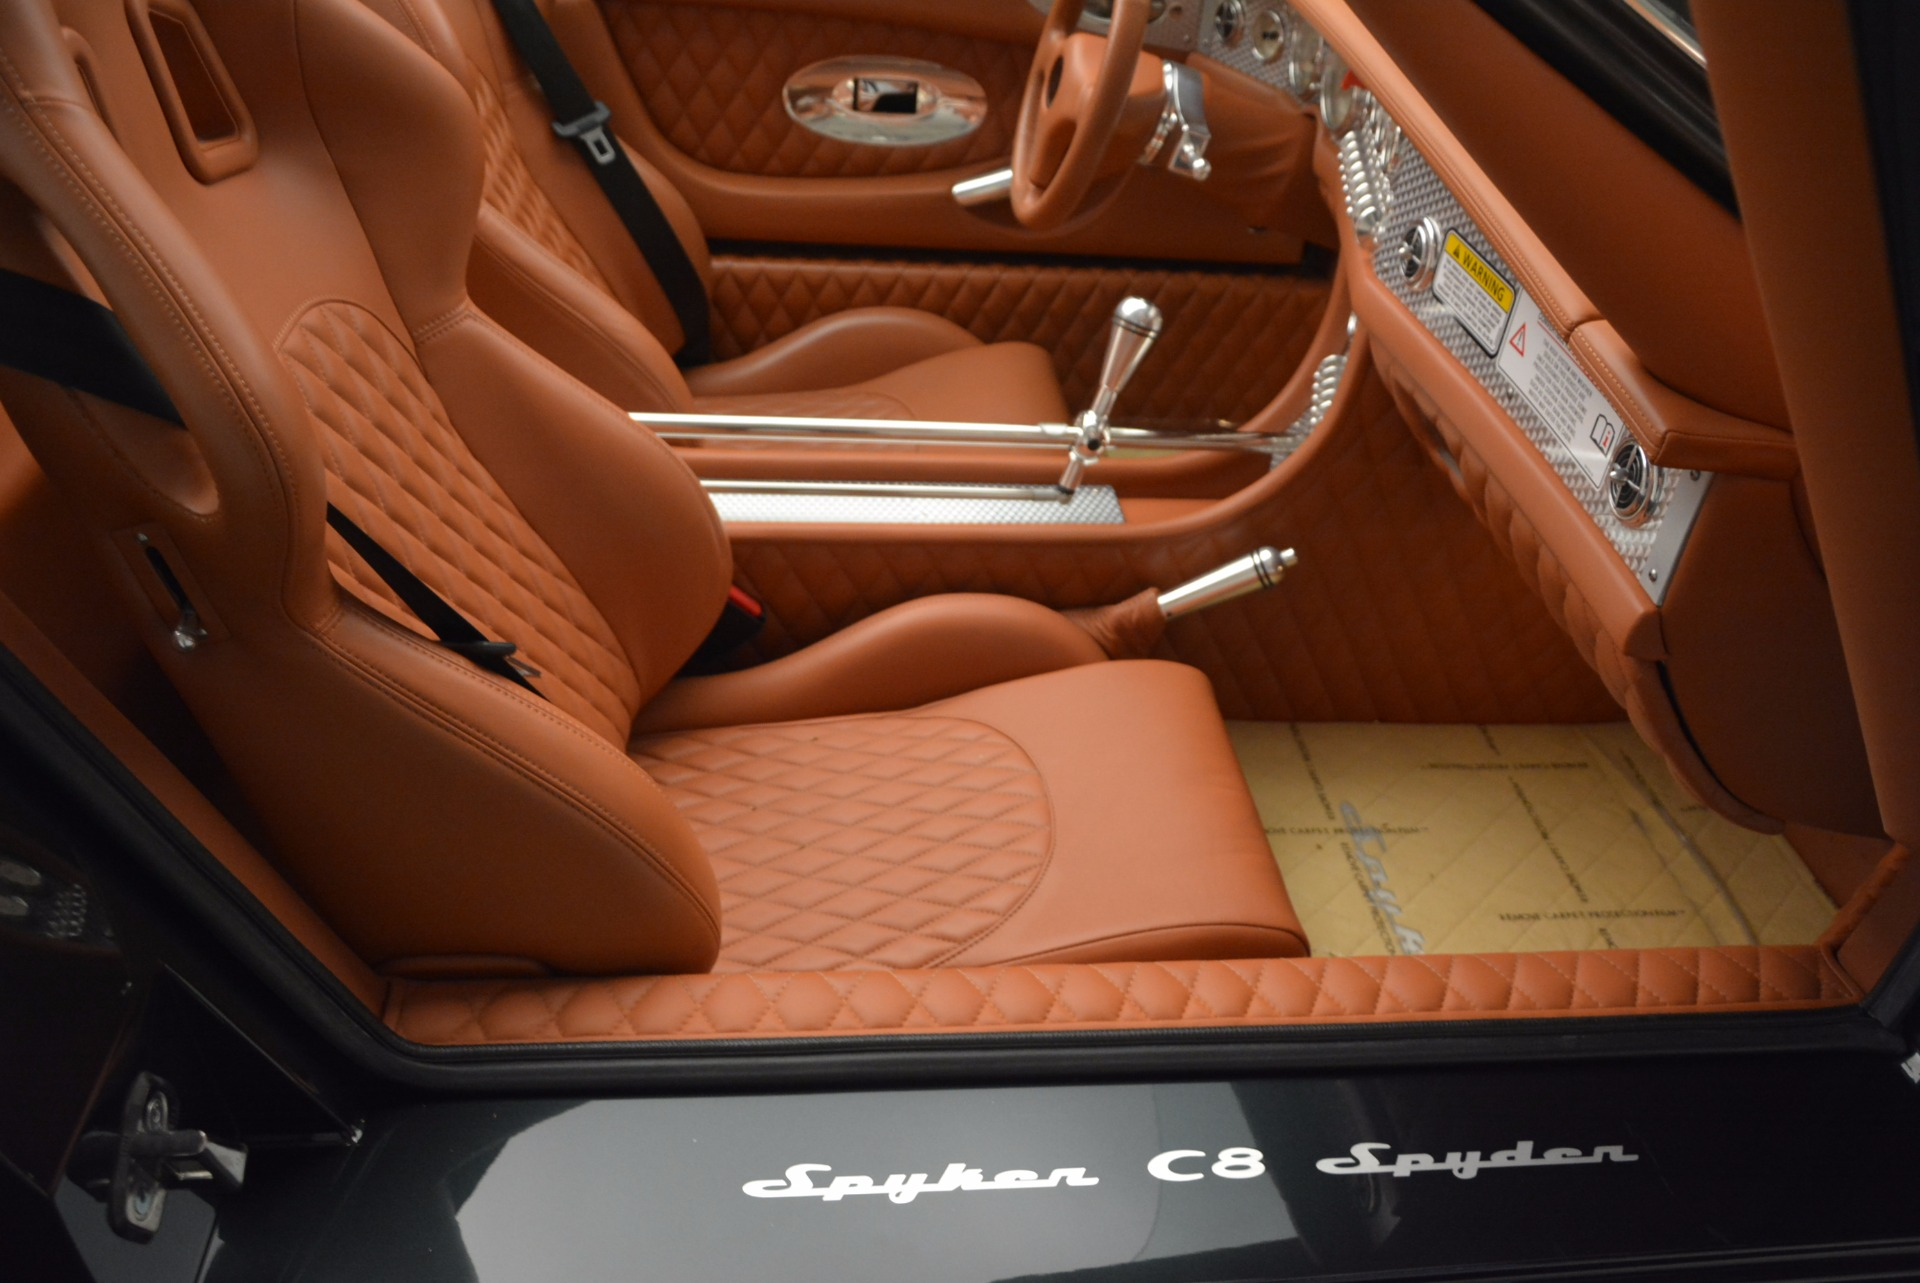 Used 2006 Spyker C8 Spyder  For Sale In Greenwich, CT. Alfa Romeo of Greenwich, 7157 1007_p20